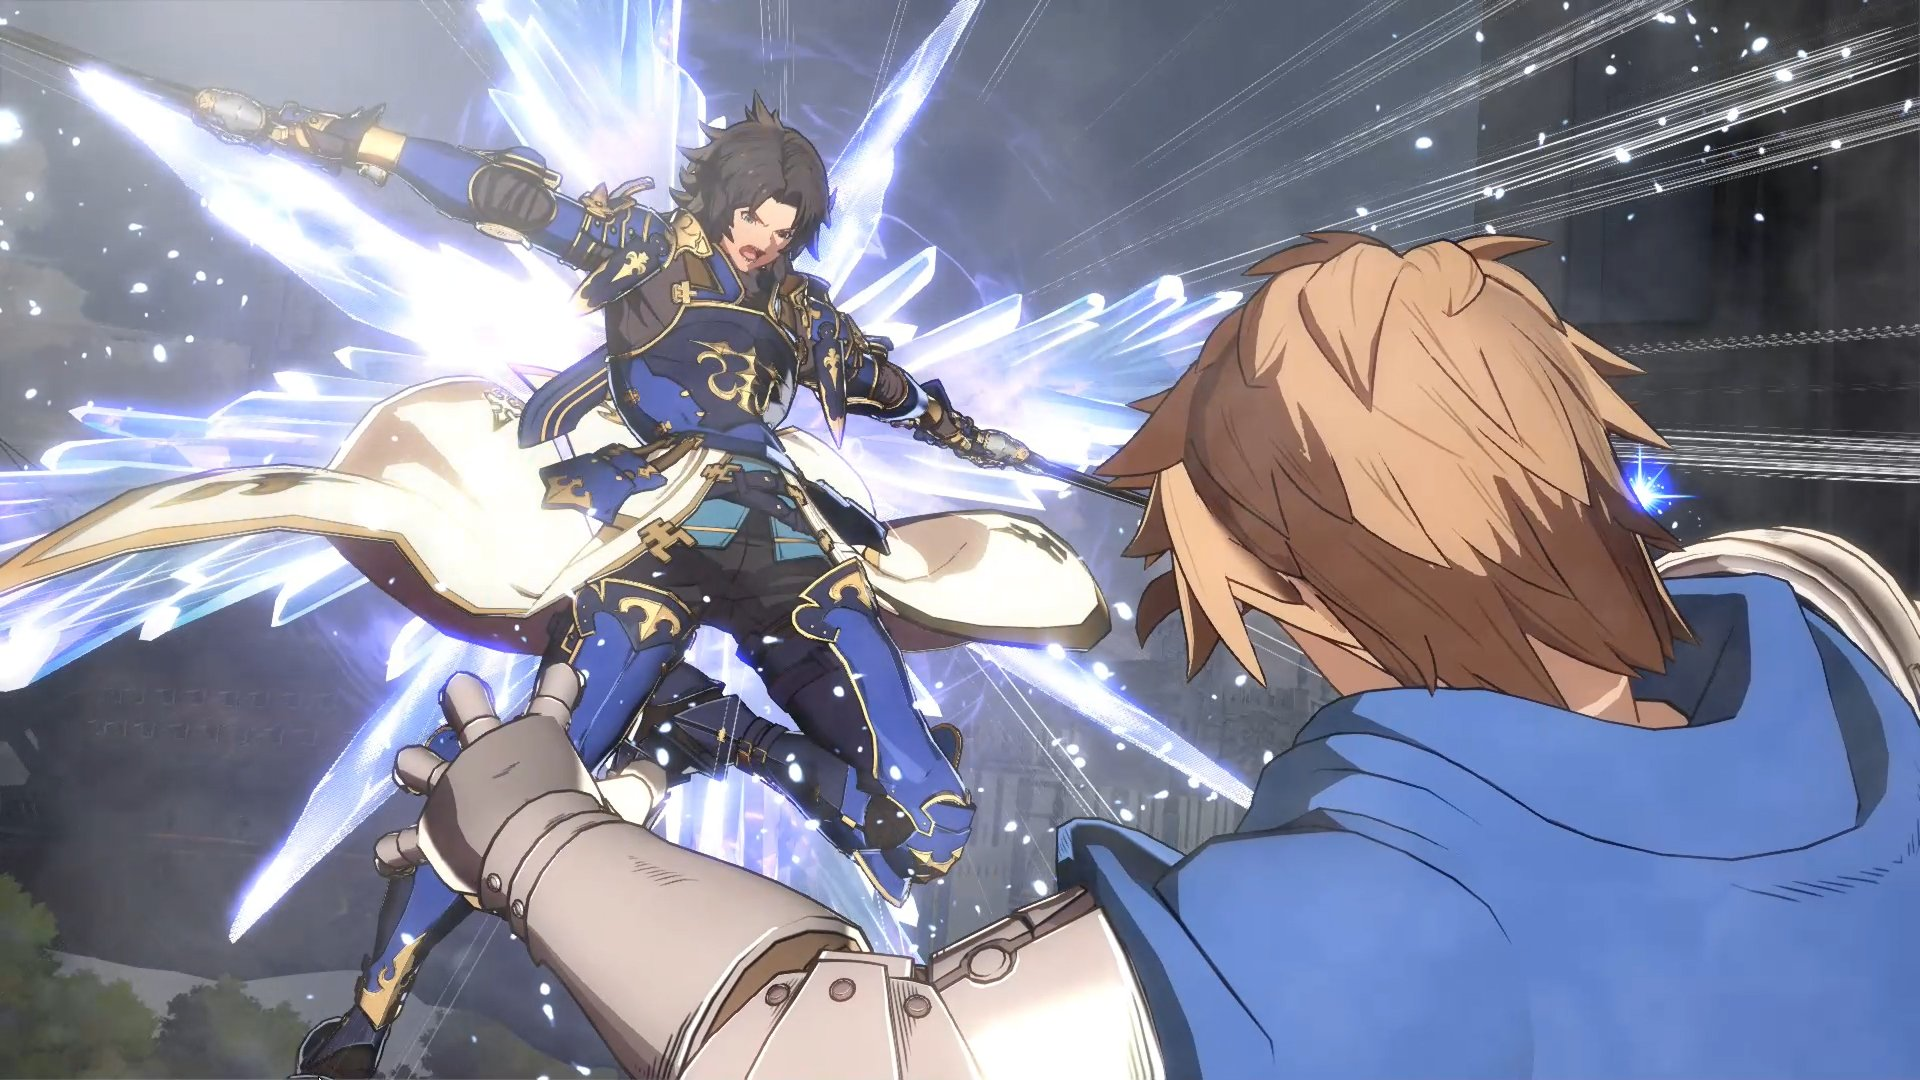 Granblue Fantasy: Versus wants players of all skill-levels to experience its splendor screenshot